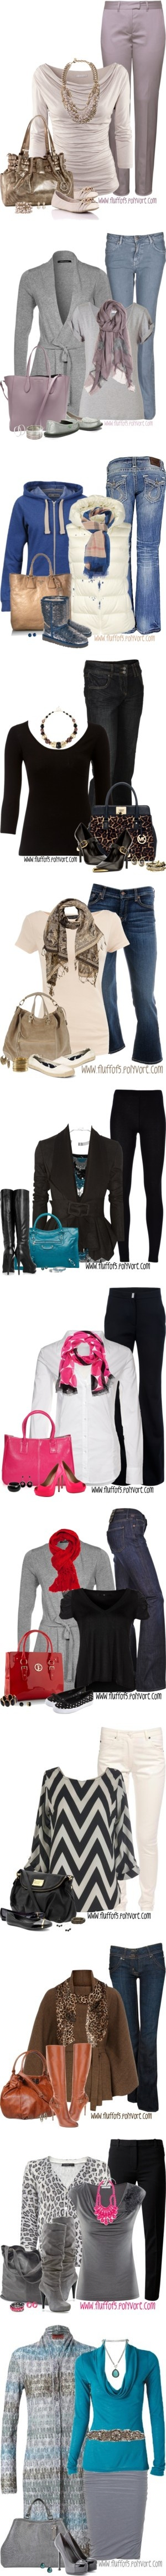 """""""www.fluffof5.polyvore.com"""" by fluffof5 on Polyvore"""